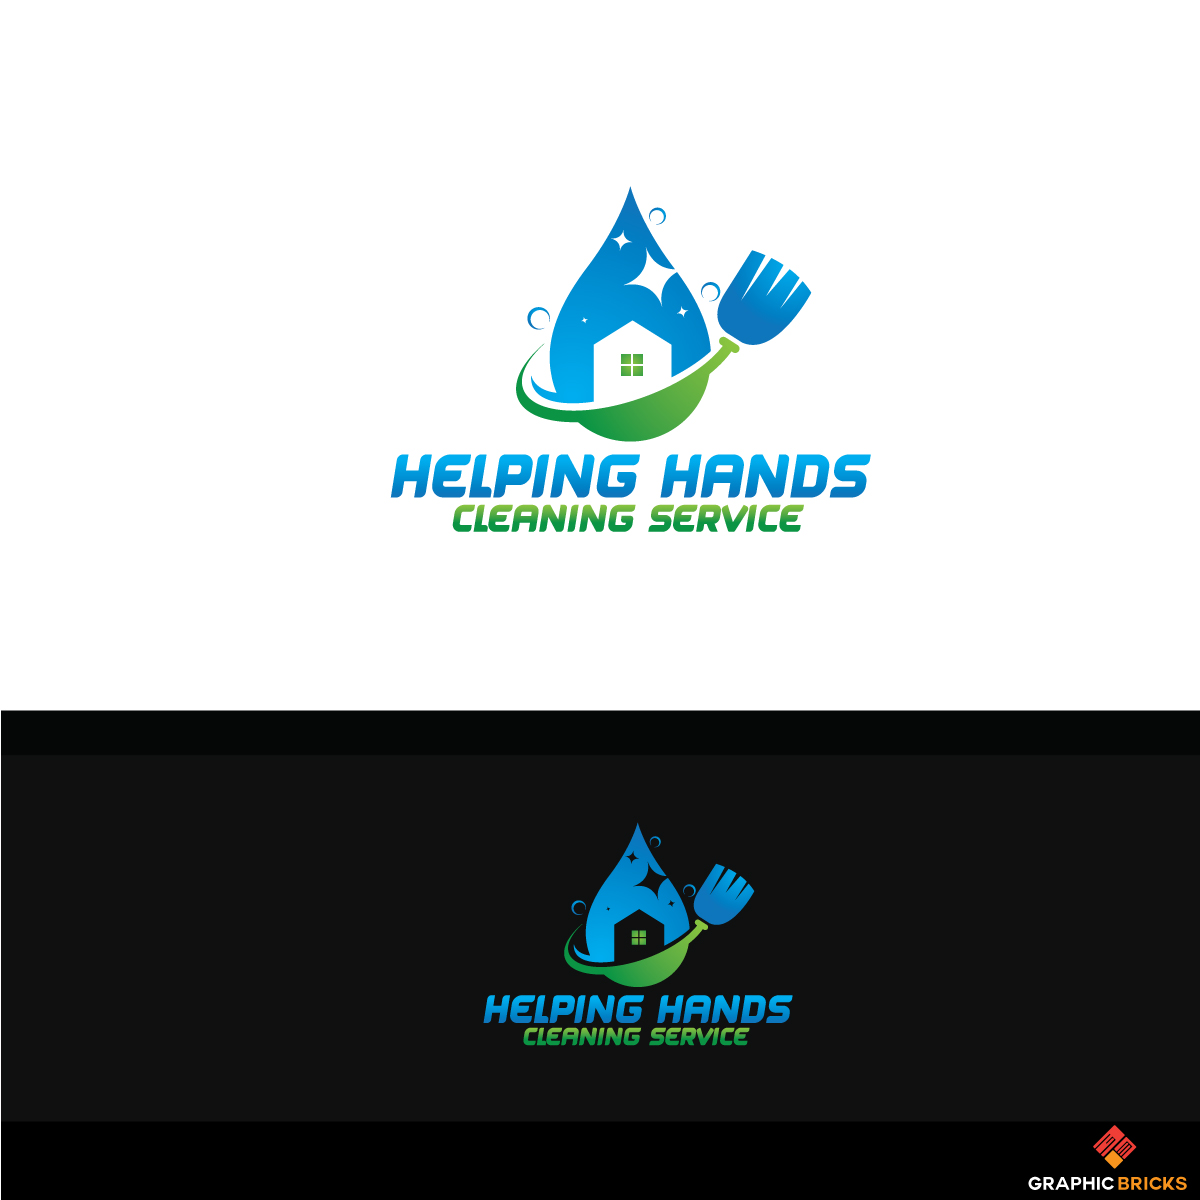 Modern, Professional, House Cleaning Logo Design for HELPING HANDS